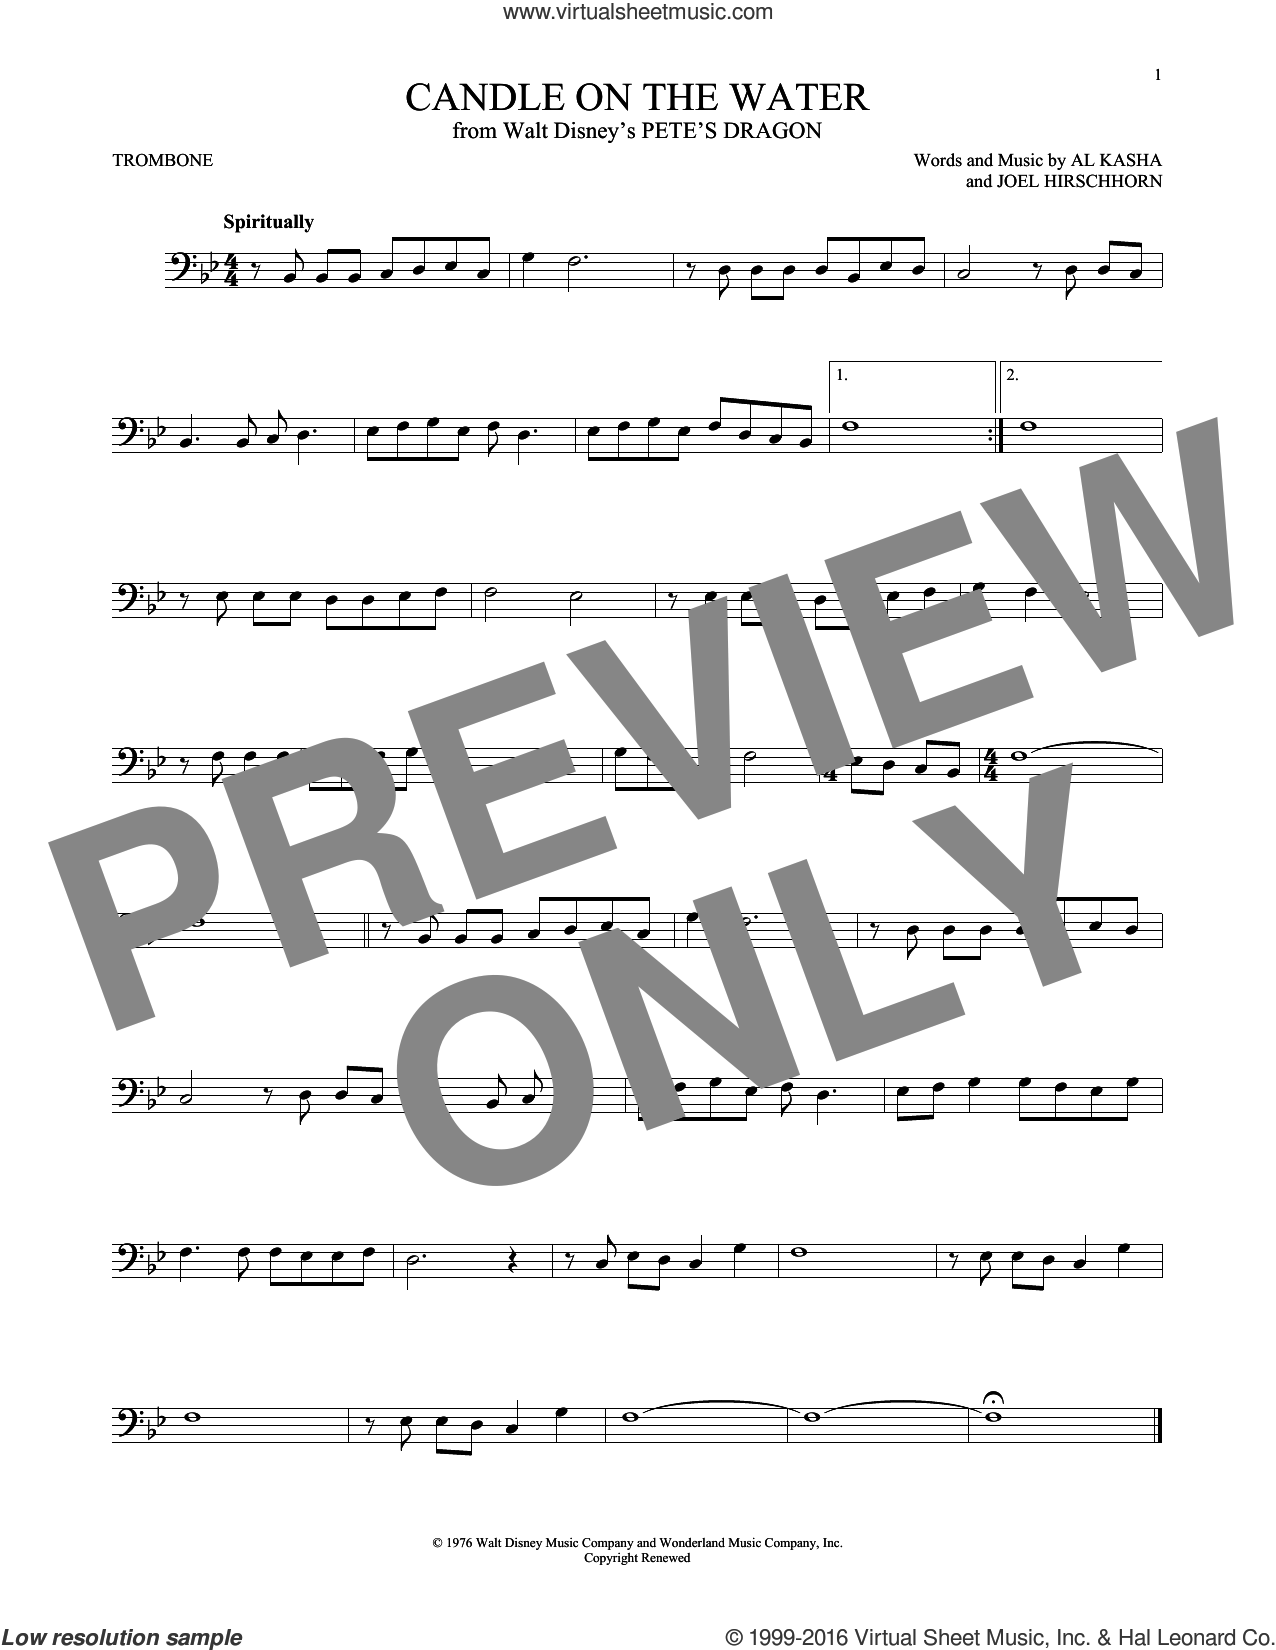 Candle On The Water sheet music for trombone solo by Al Kasha, Al Kasha & Joel Hirschhorn and Joel Hirschhorn, intermediate skill level